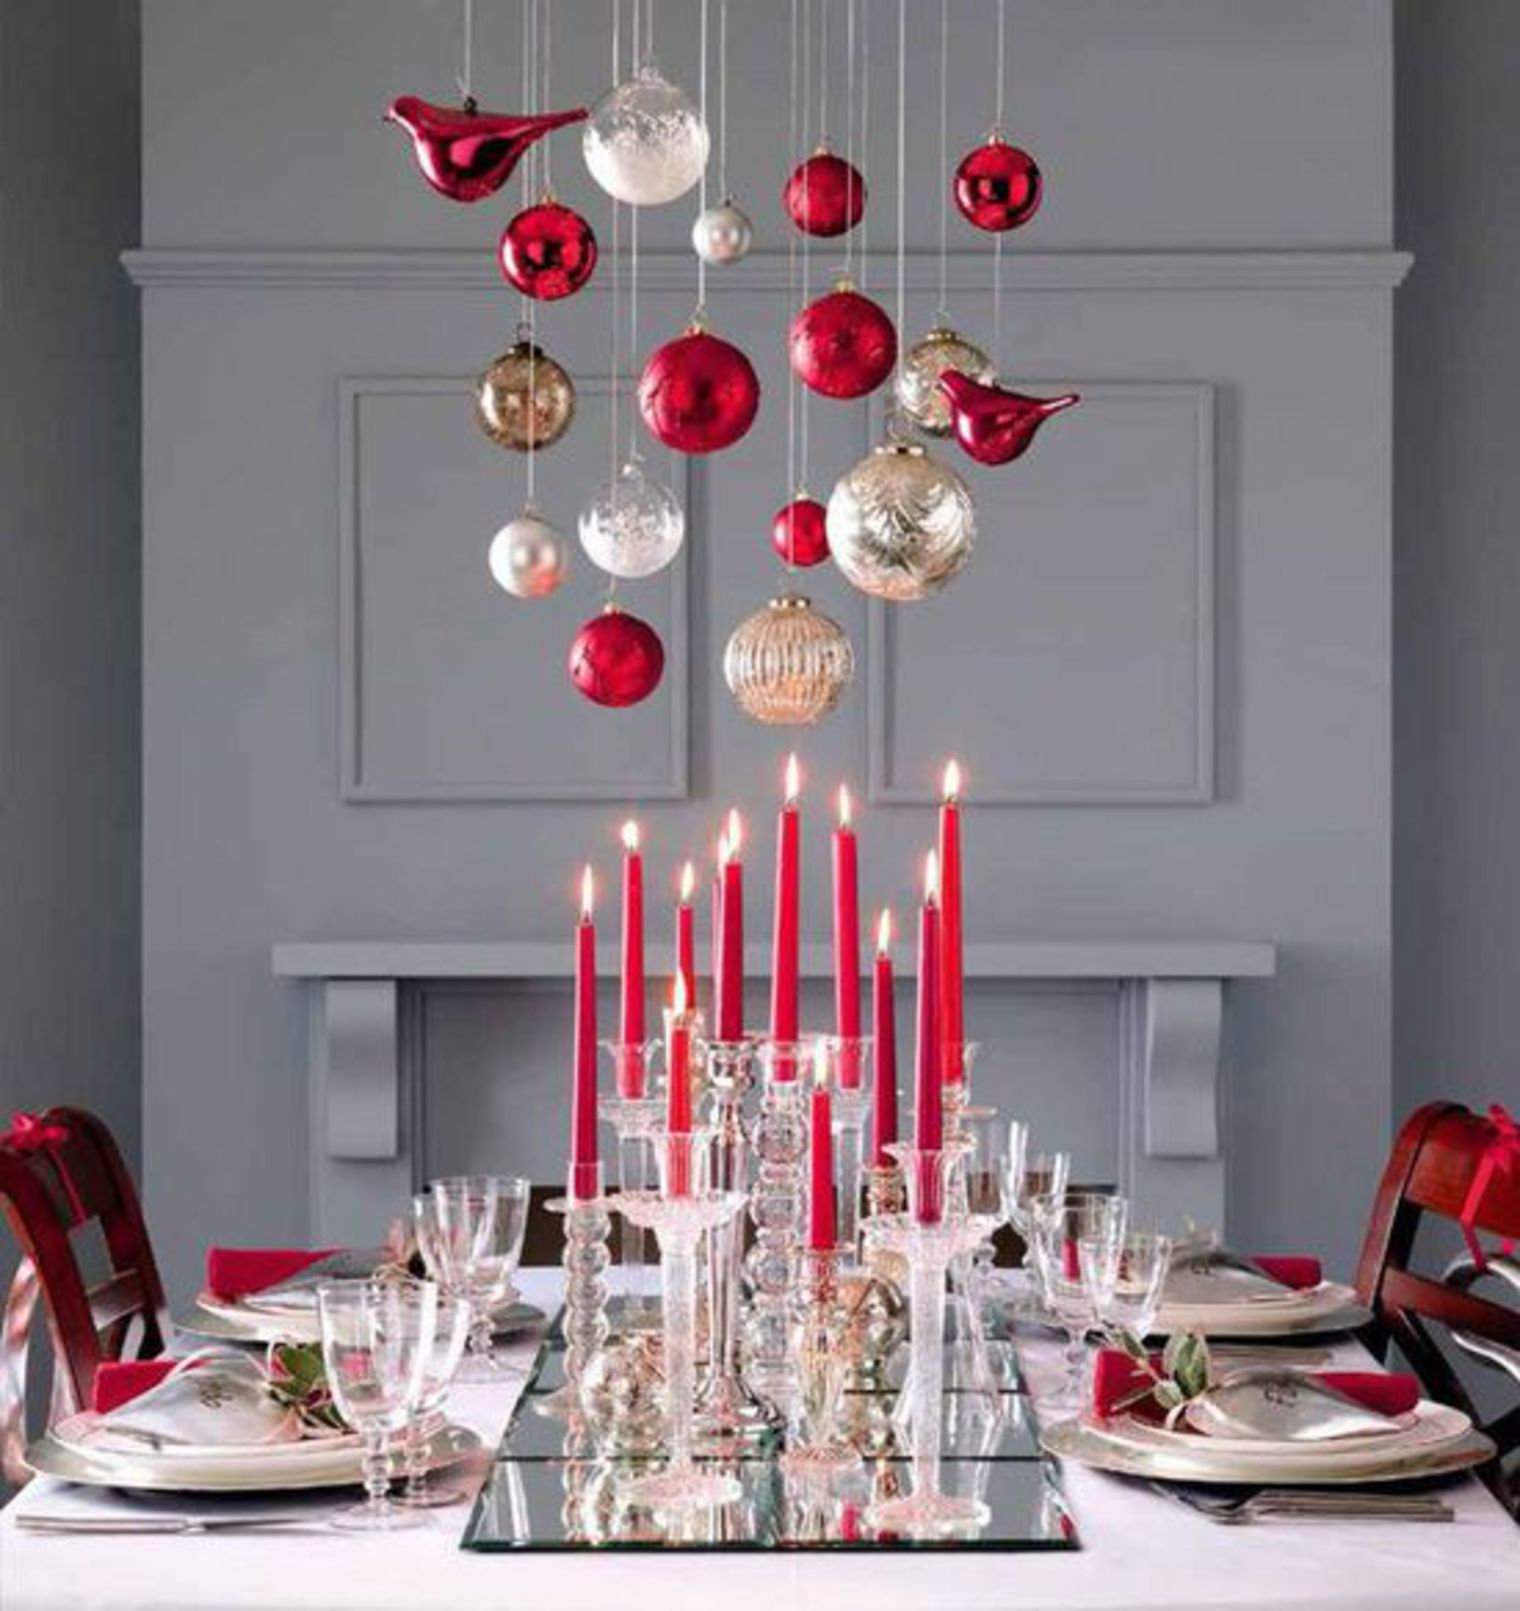 Soir es par th me d coration de table pour no l sur le - Decoration table de noel rouge et or ...